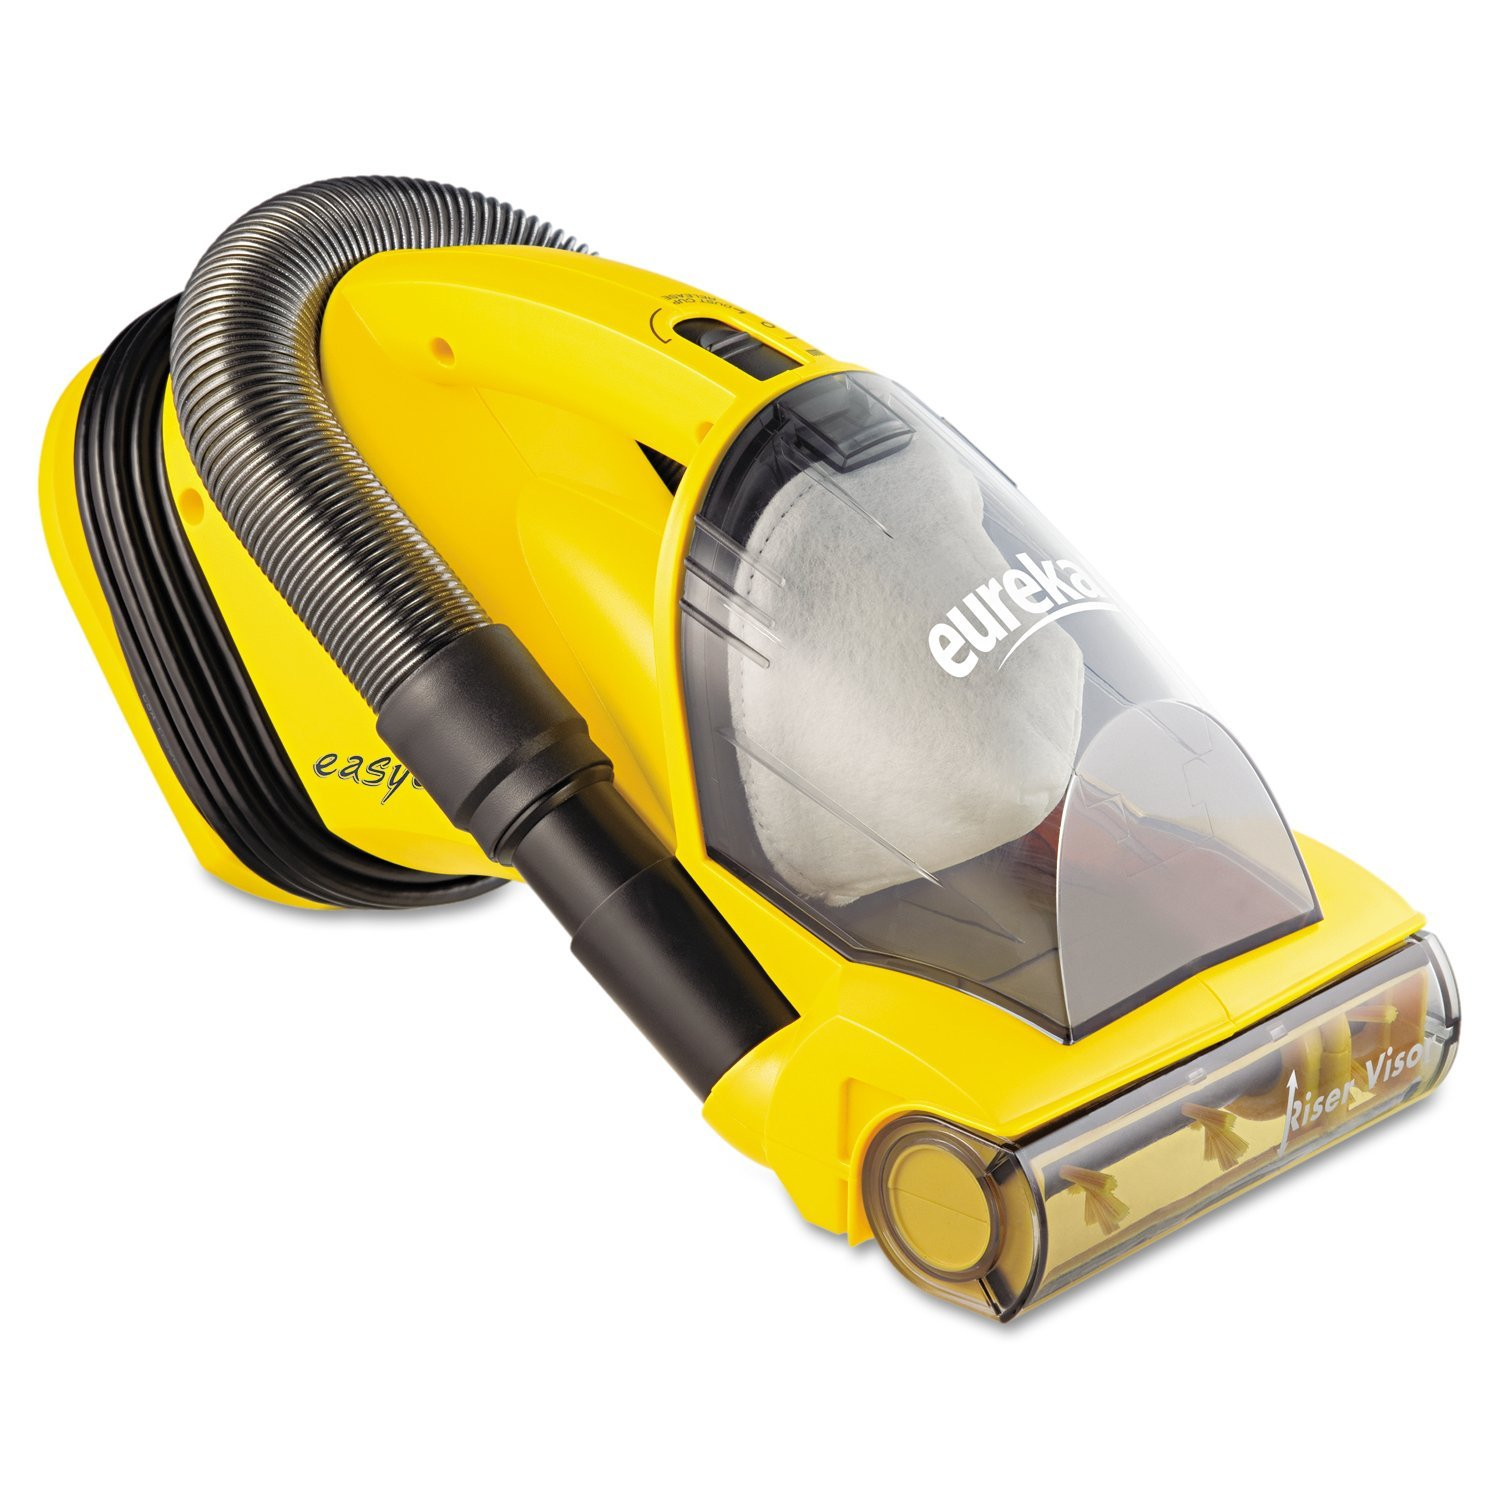 What Are The Best Vacuums For Dog Hair